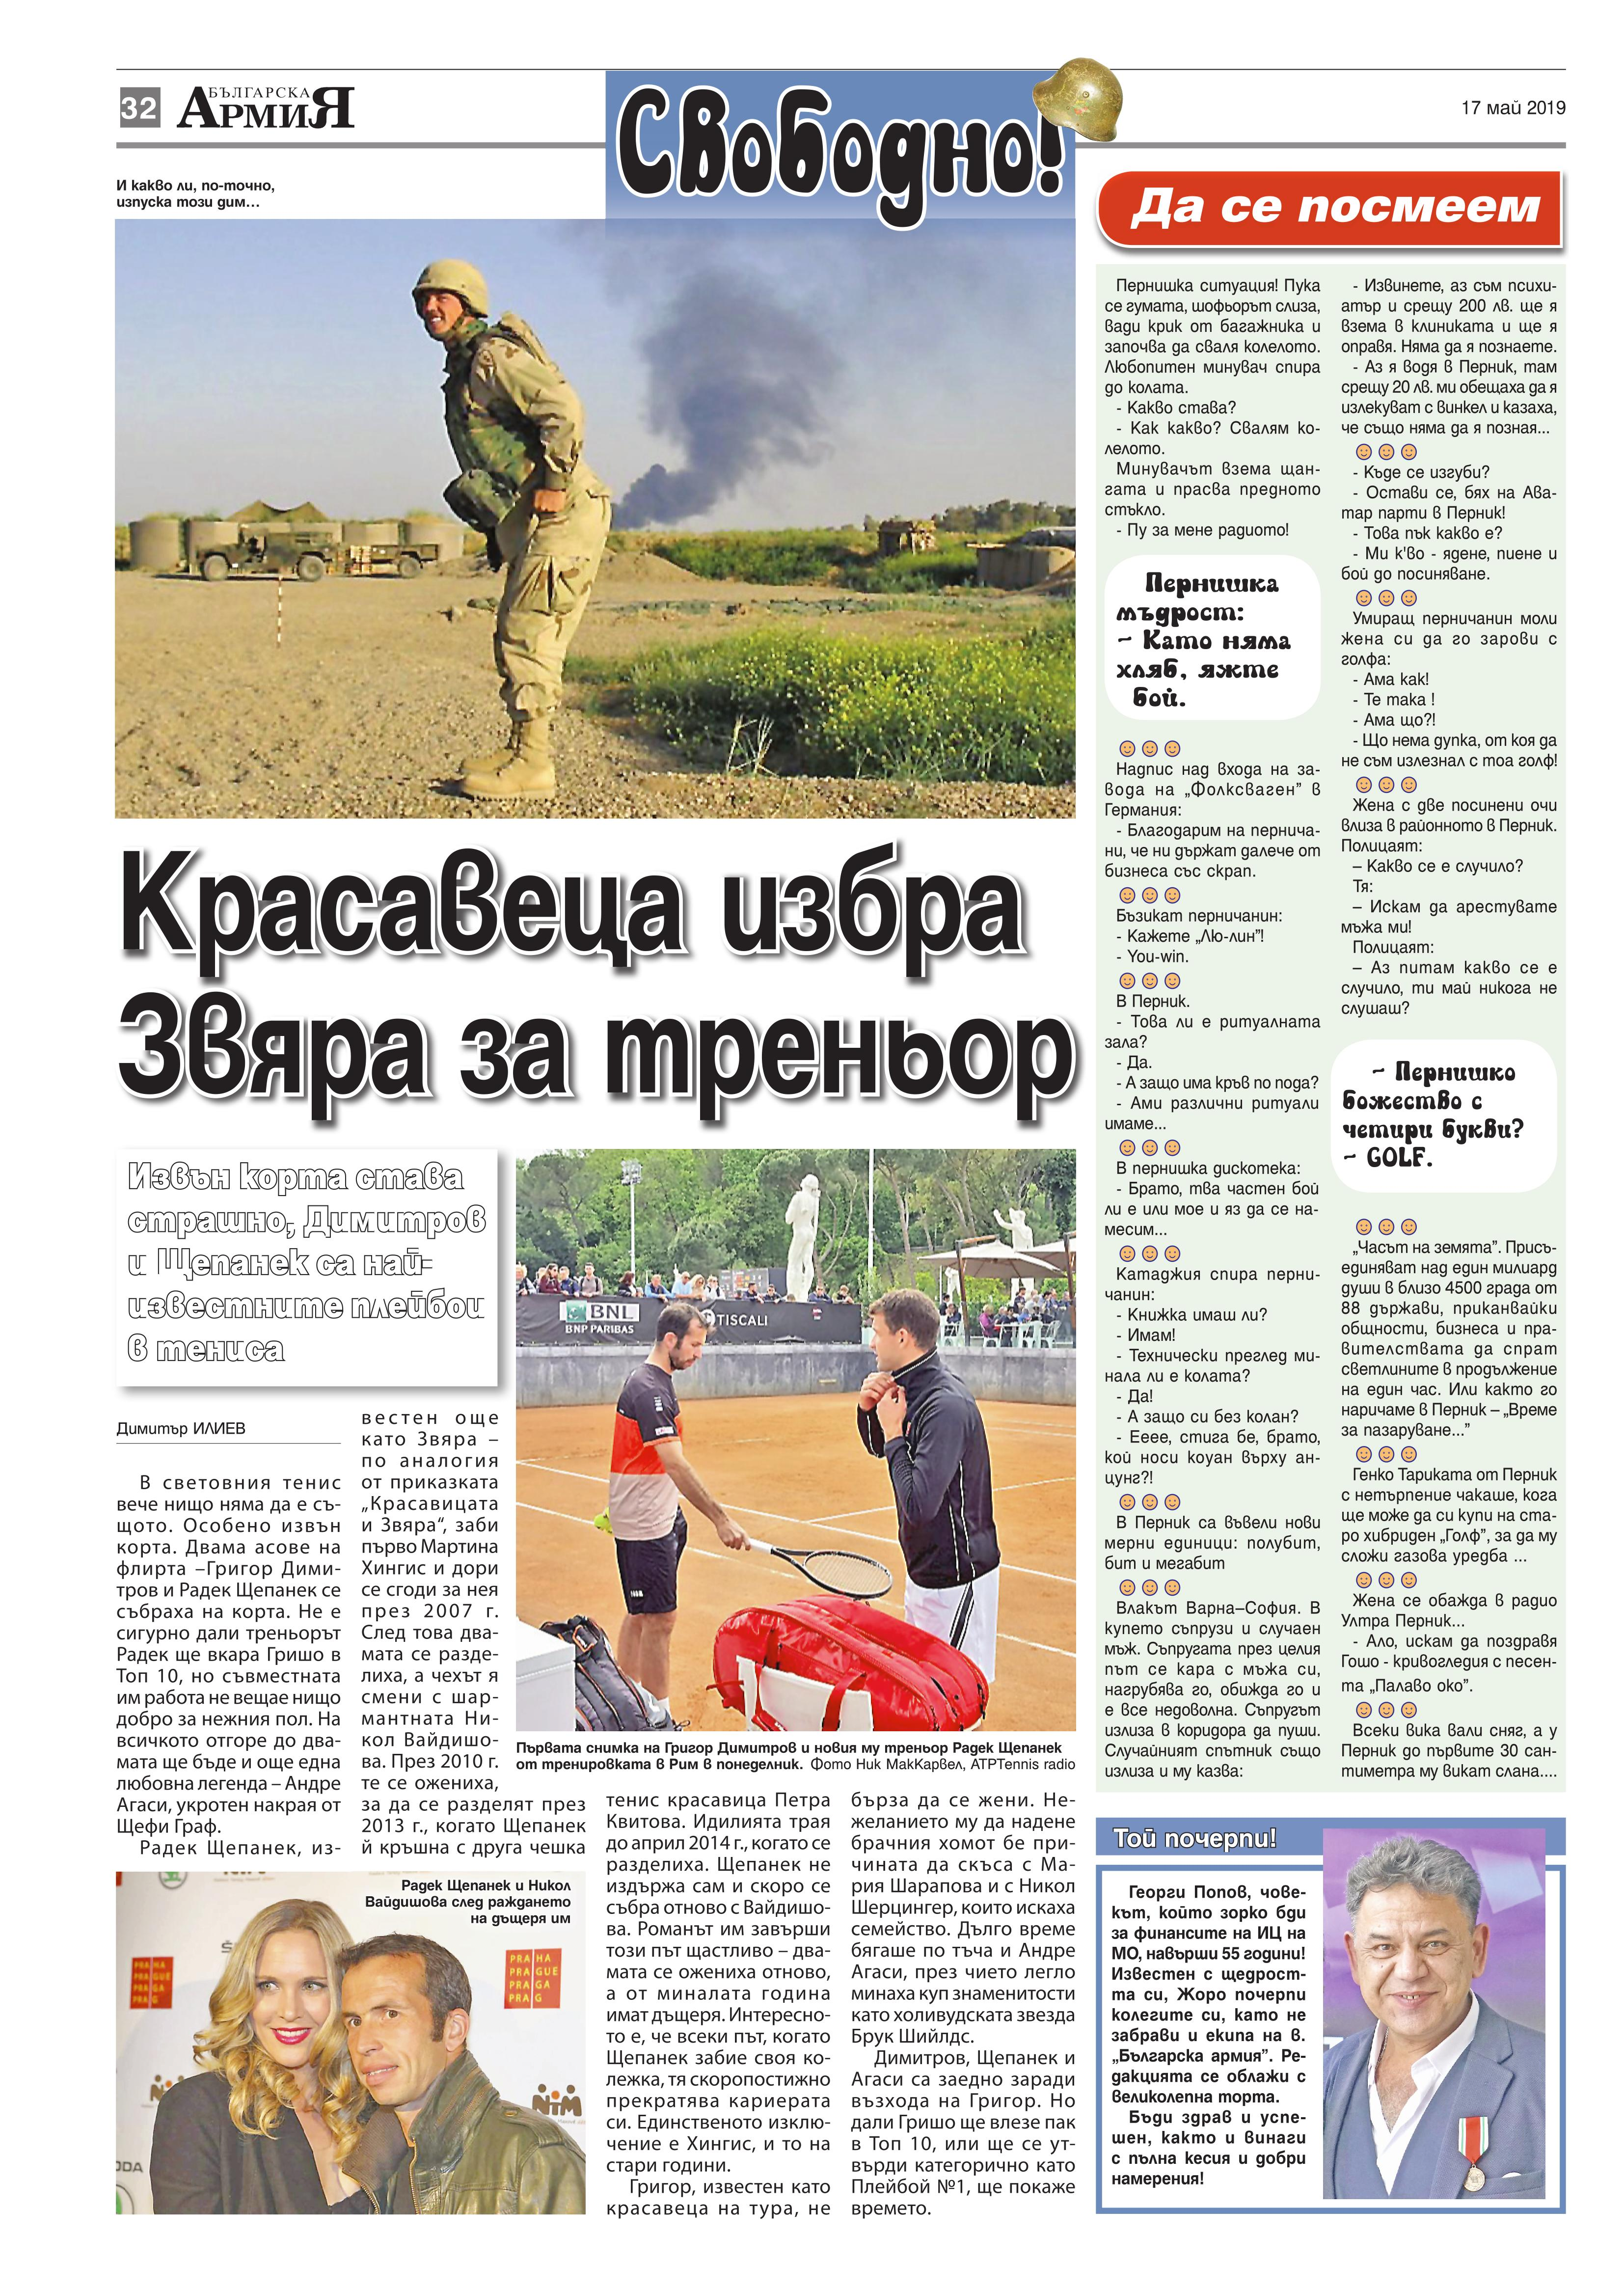 https://armymedia.bg/wp-content/uploads/2015/06/32.page1_-81.jpg